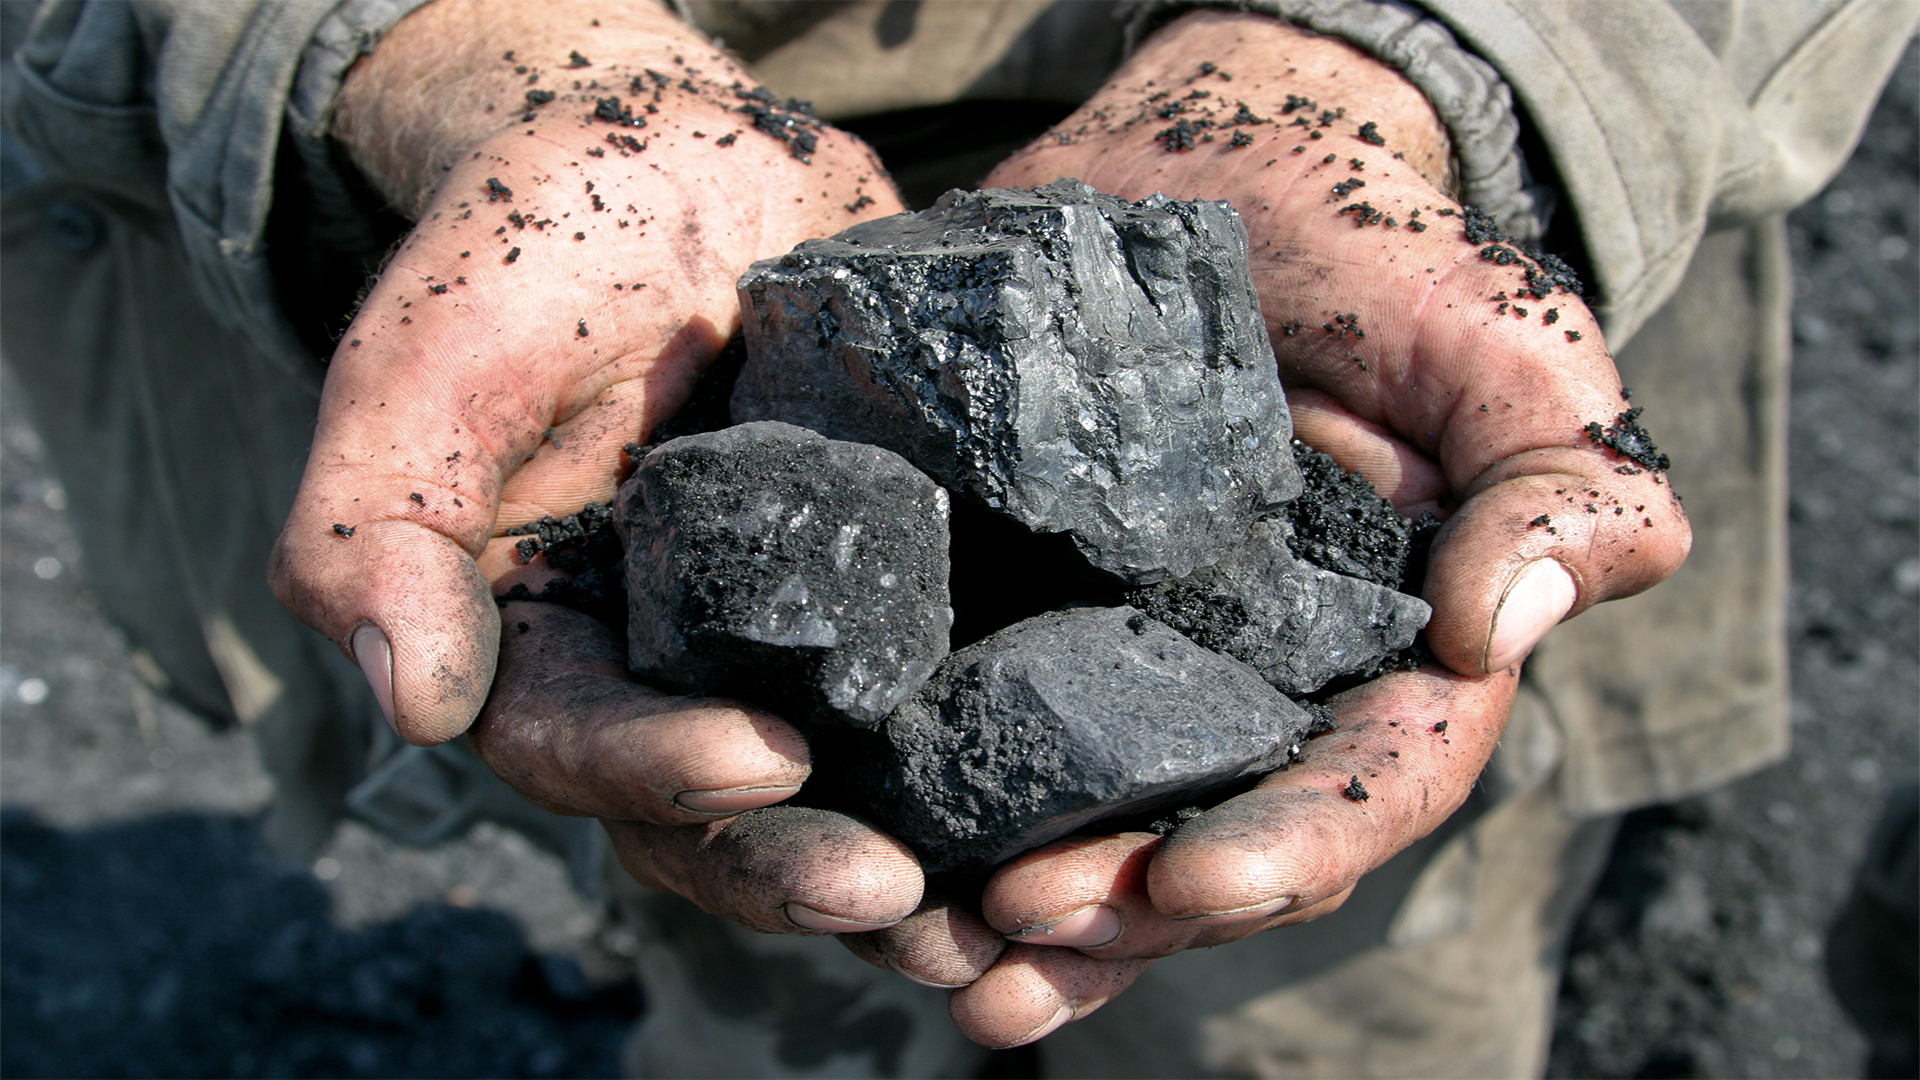 Coal in the hands of miner